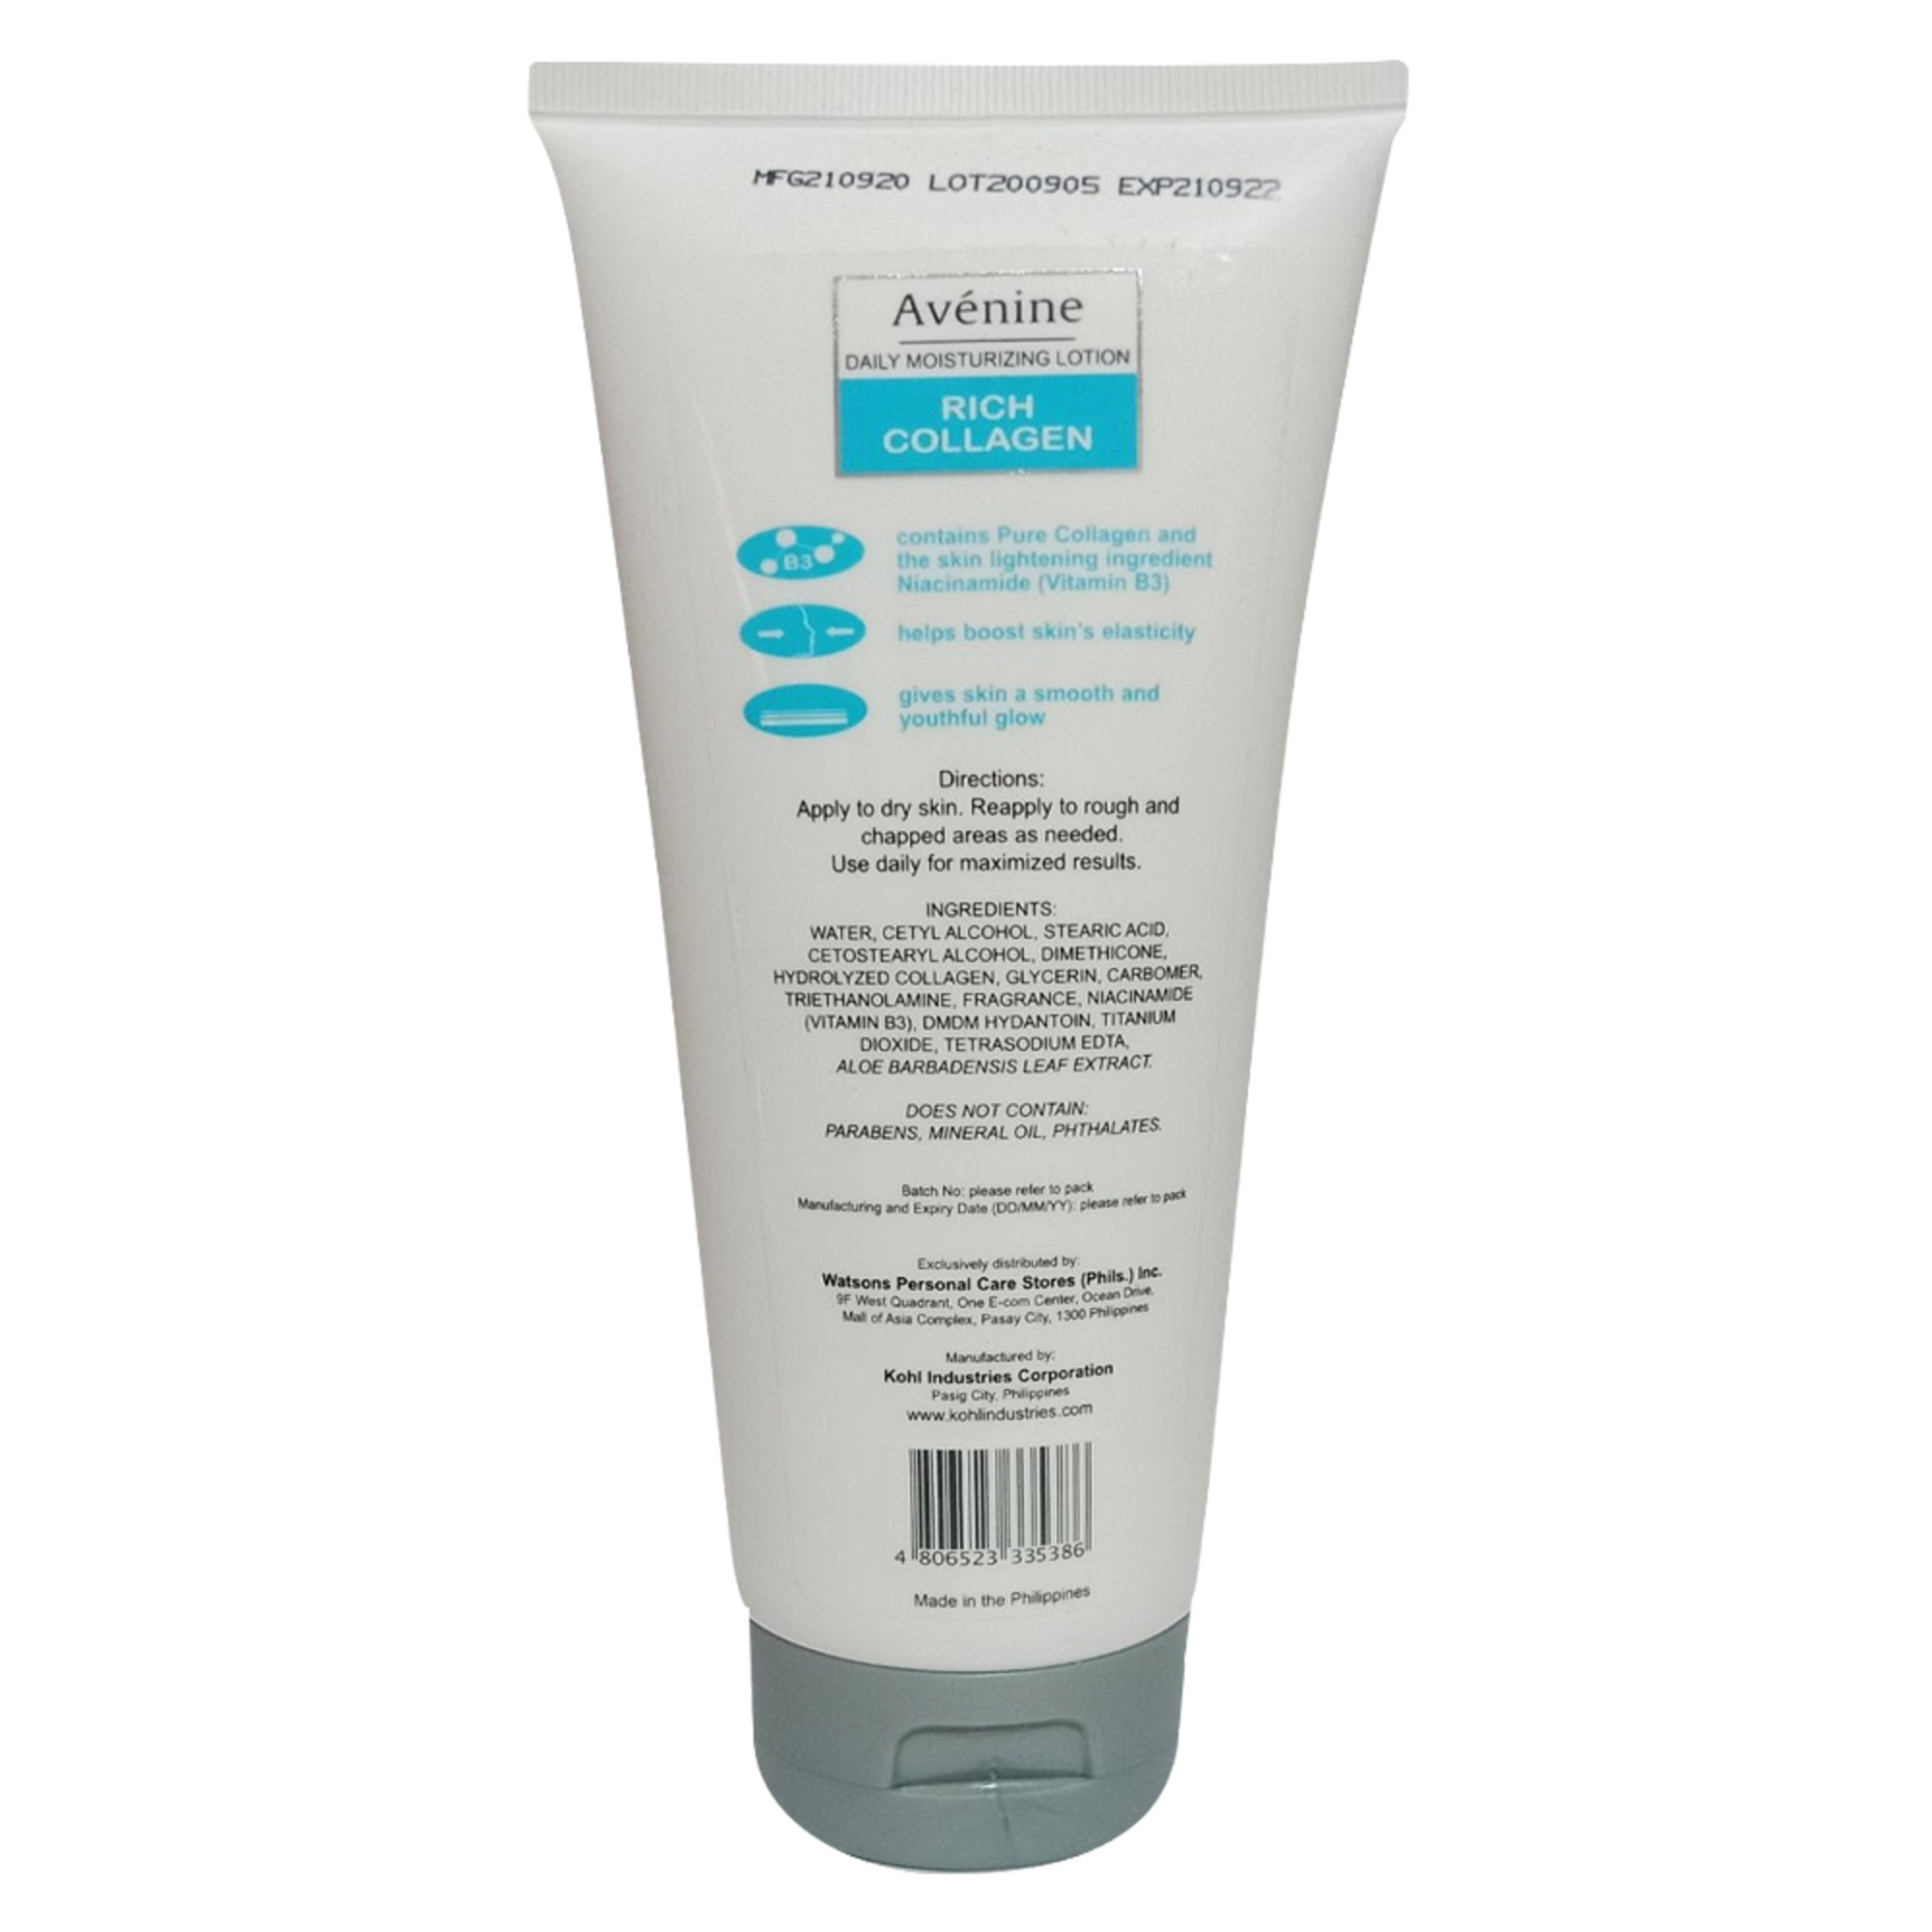 AVENINEWhite Extra Rich Collagen Body Lotion 250ml,For Women